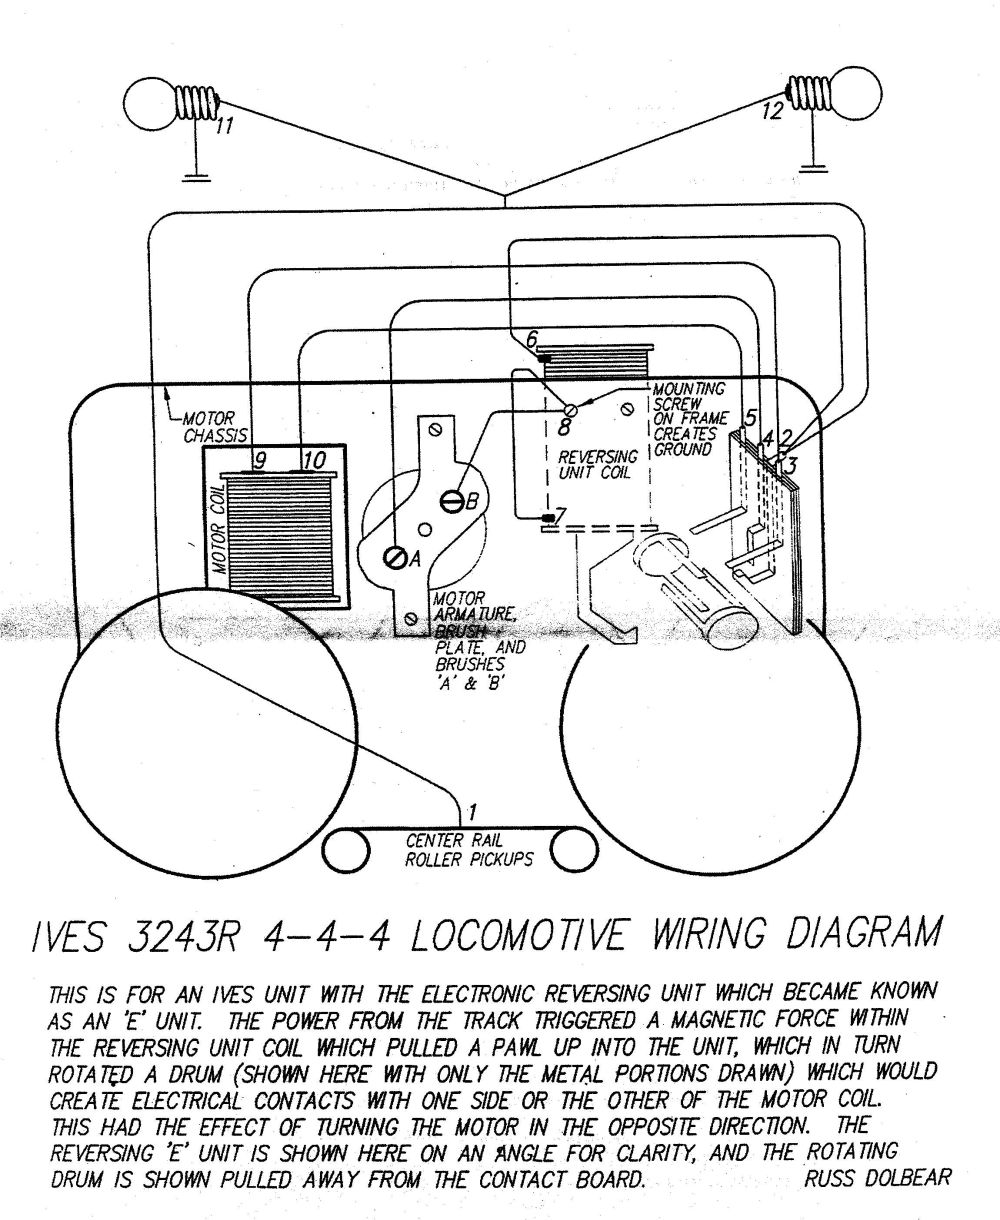 medium resolution of wide gauge motorsclick here for printable wiring diagram 1921 motor